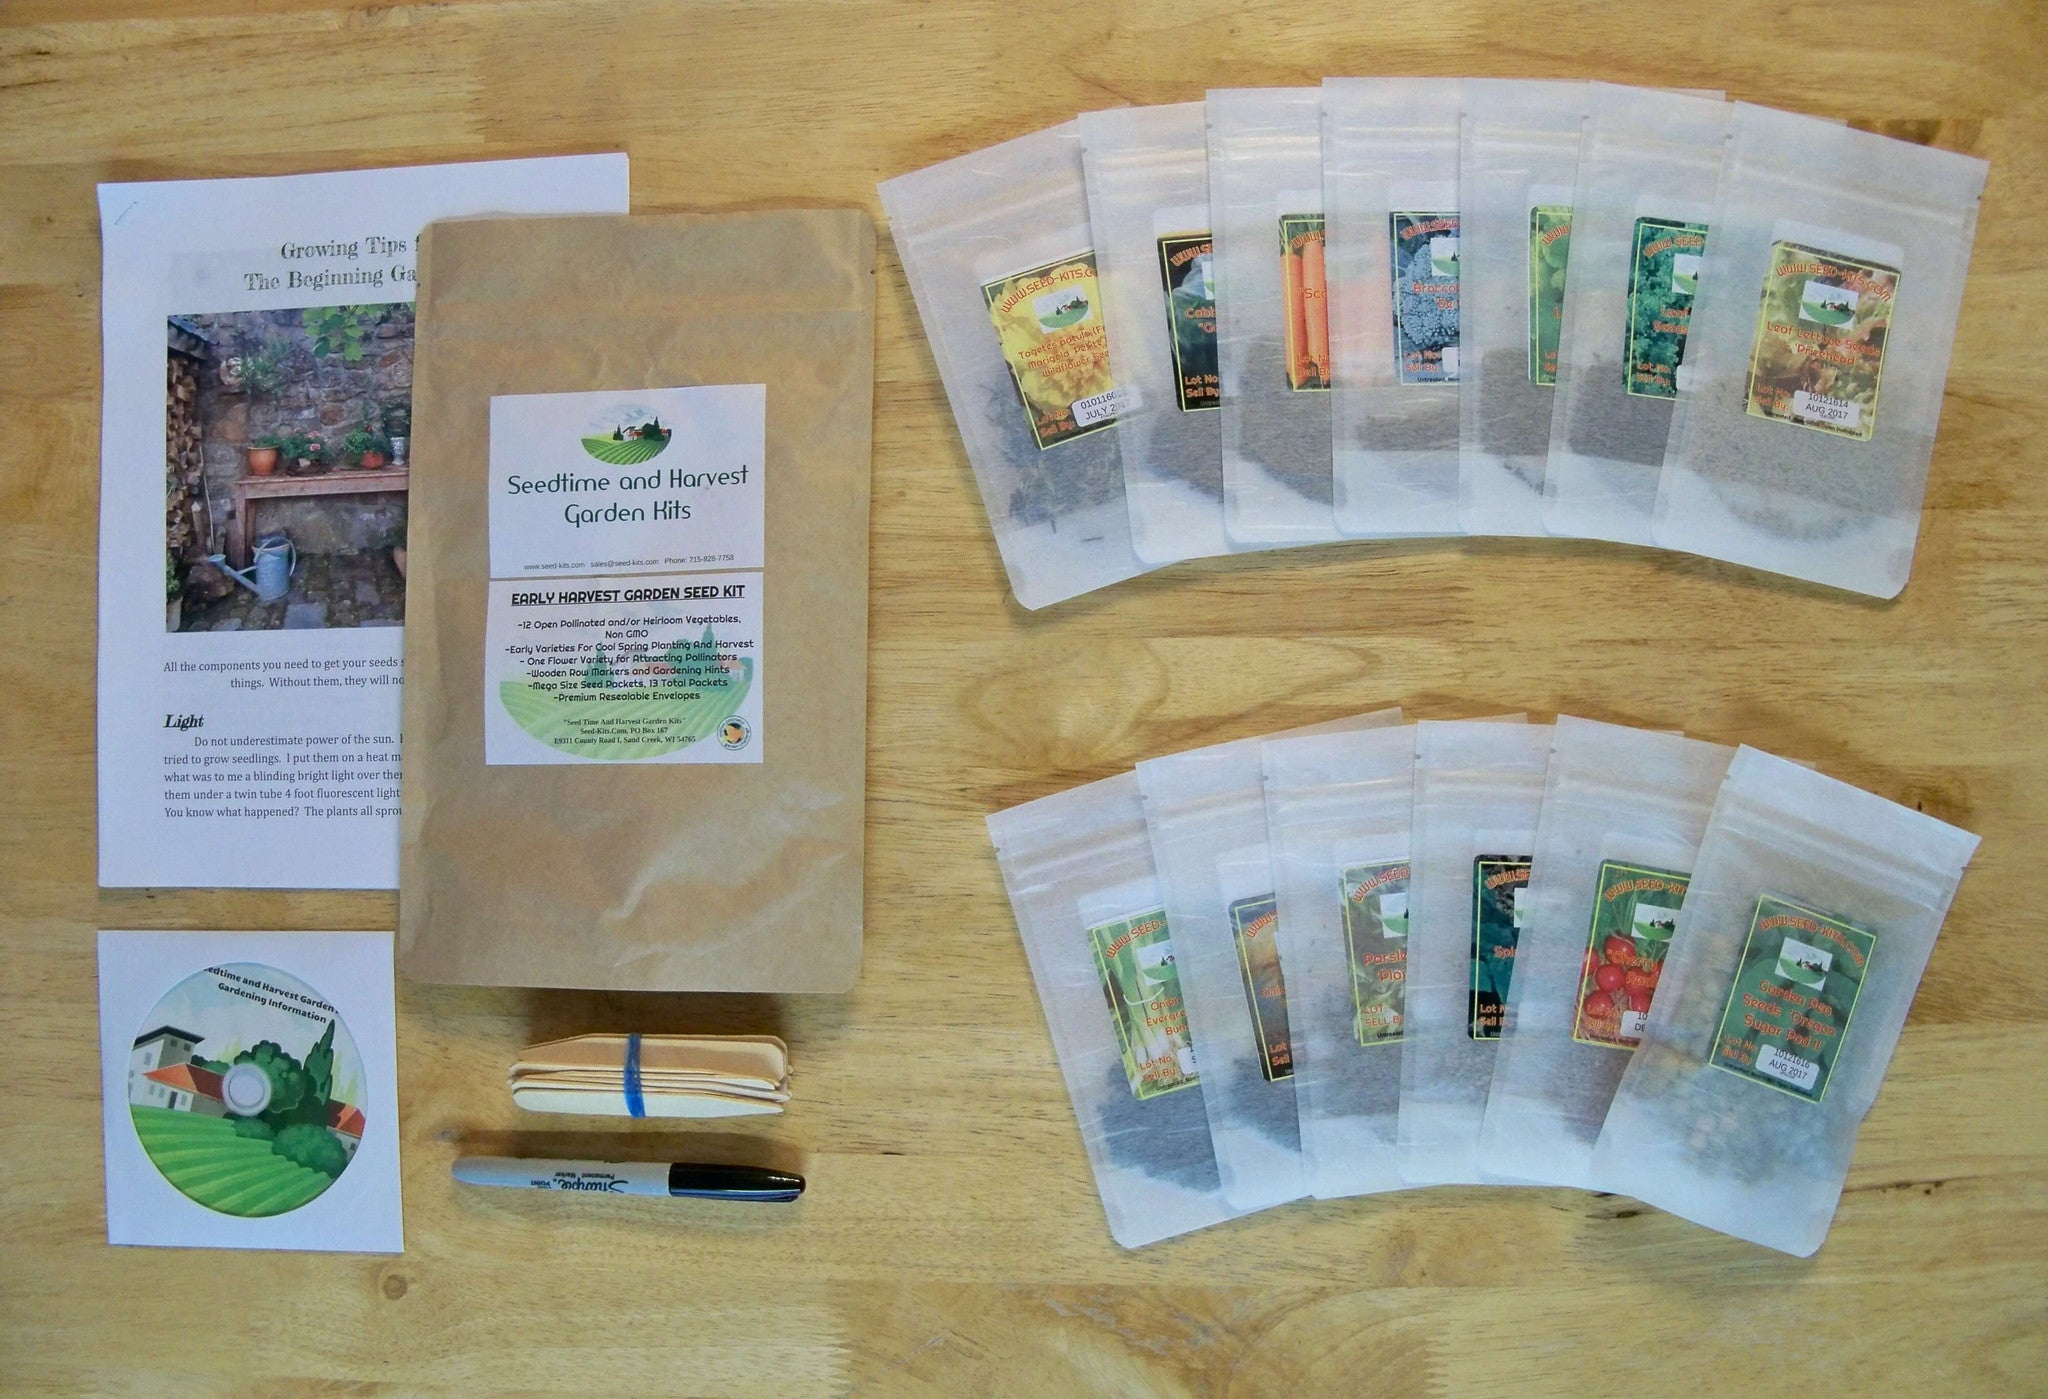 Unwins Kitchen Garden Herb Kit Faery Garden Kits 8 Styles 3995 Sundays Child In Lexington Va